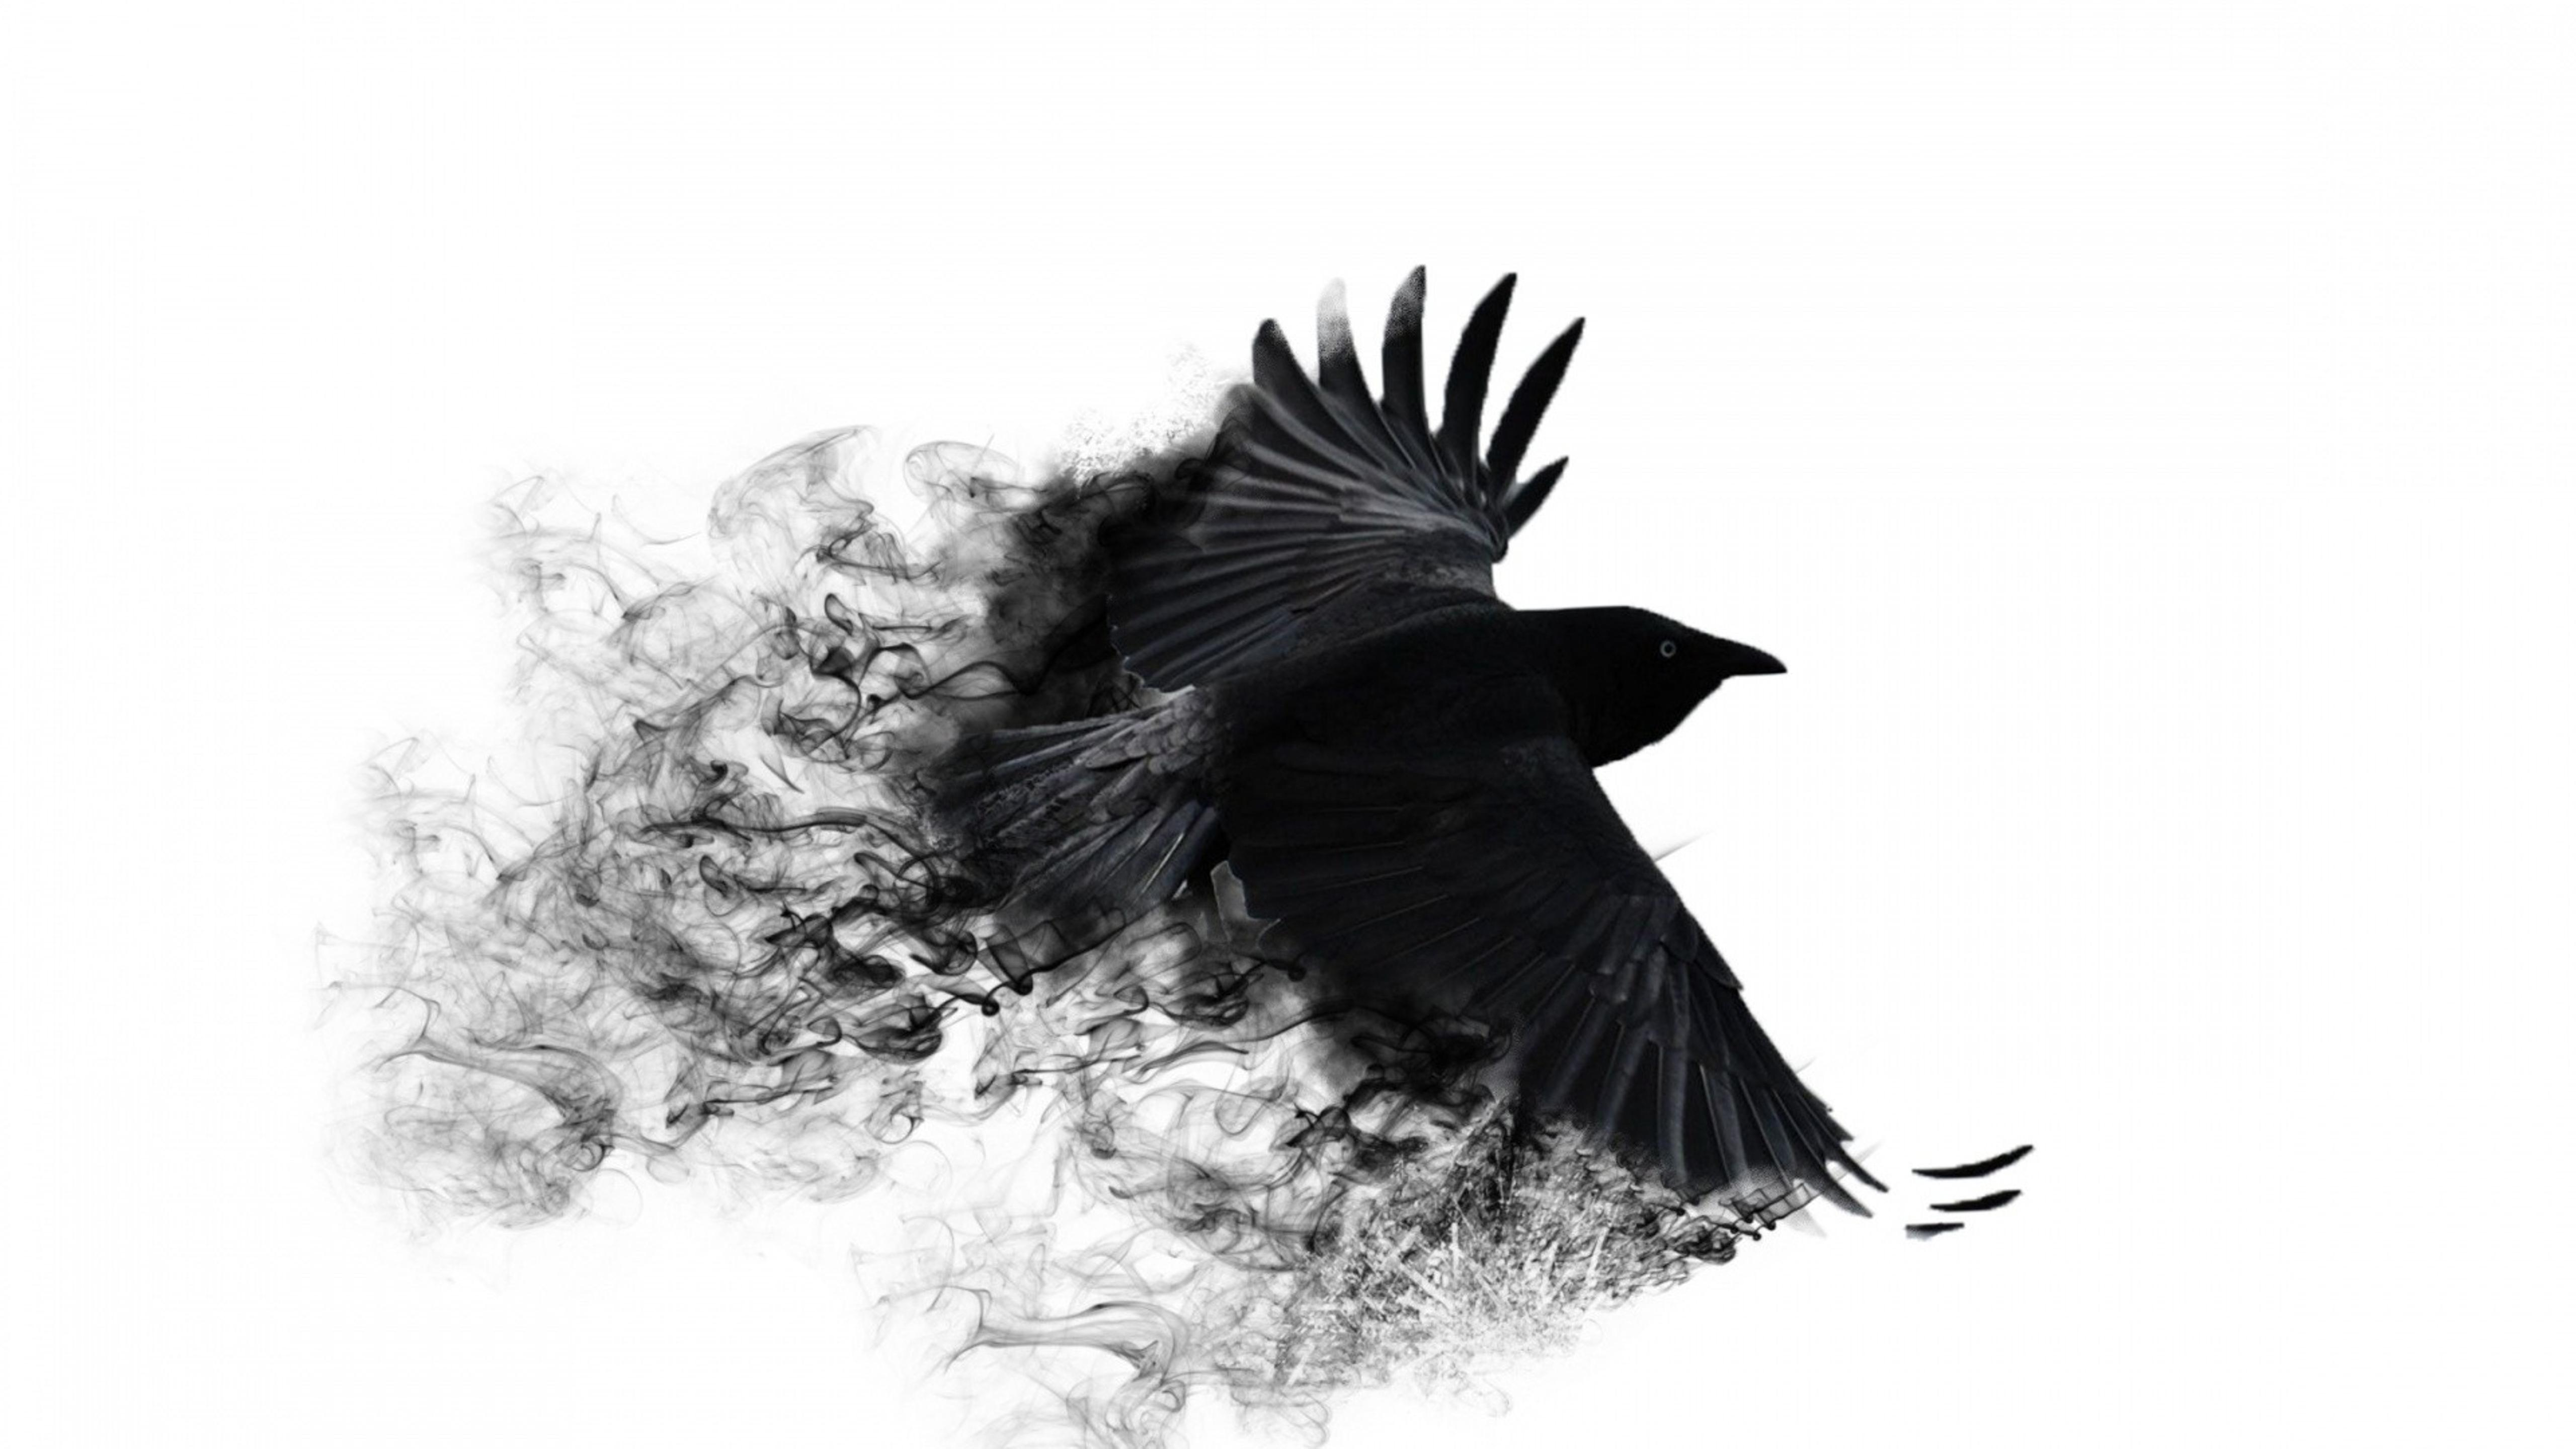 Abstract Black Crow With Broken Wings Wallpaper Download